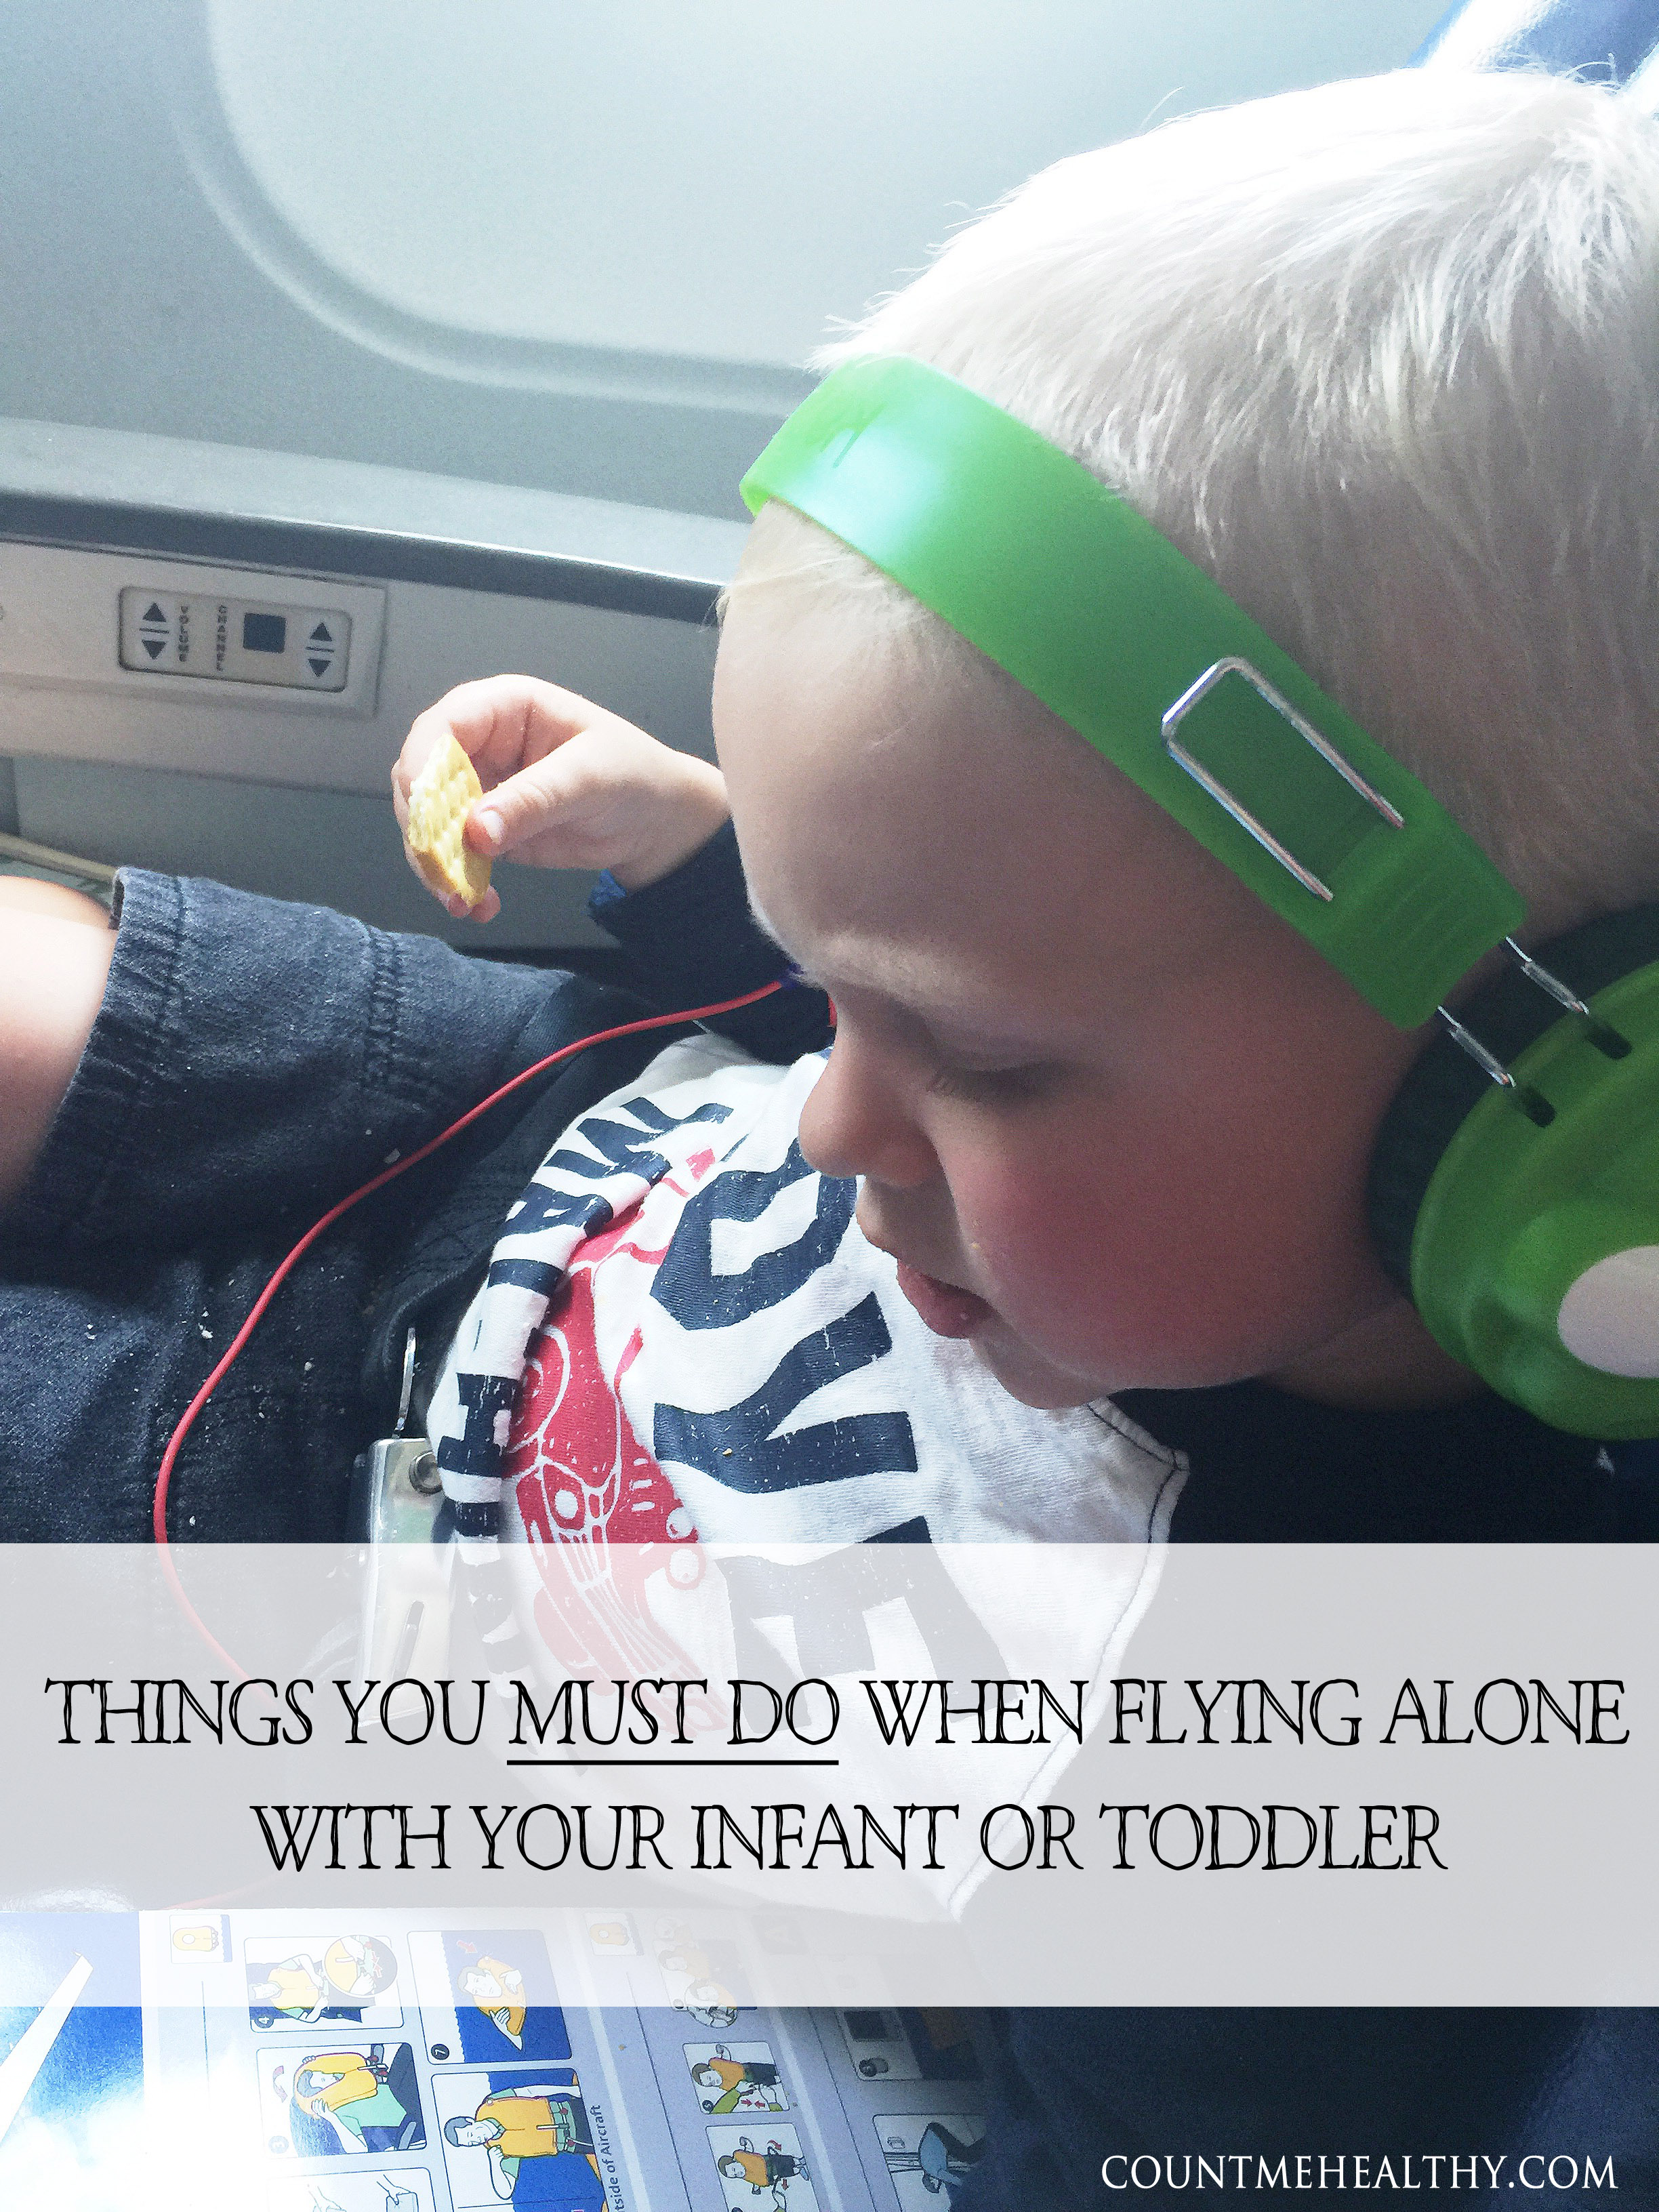 If You Must Fly With A Toddler, I Highly Recommend Finding One Of THESE